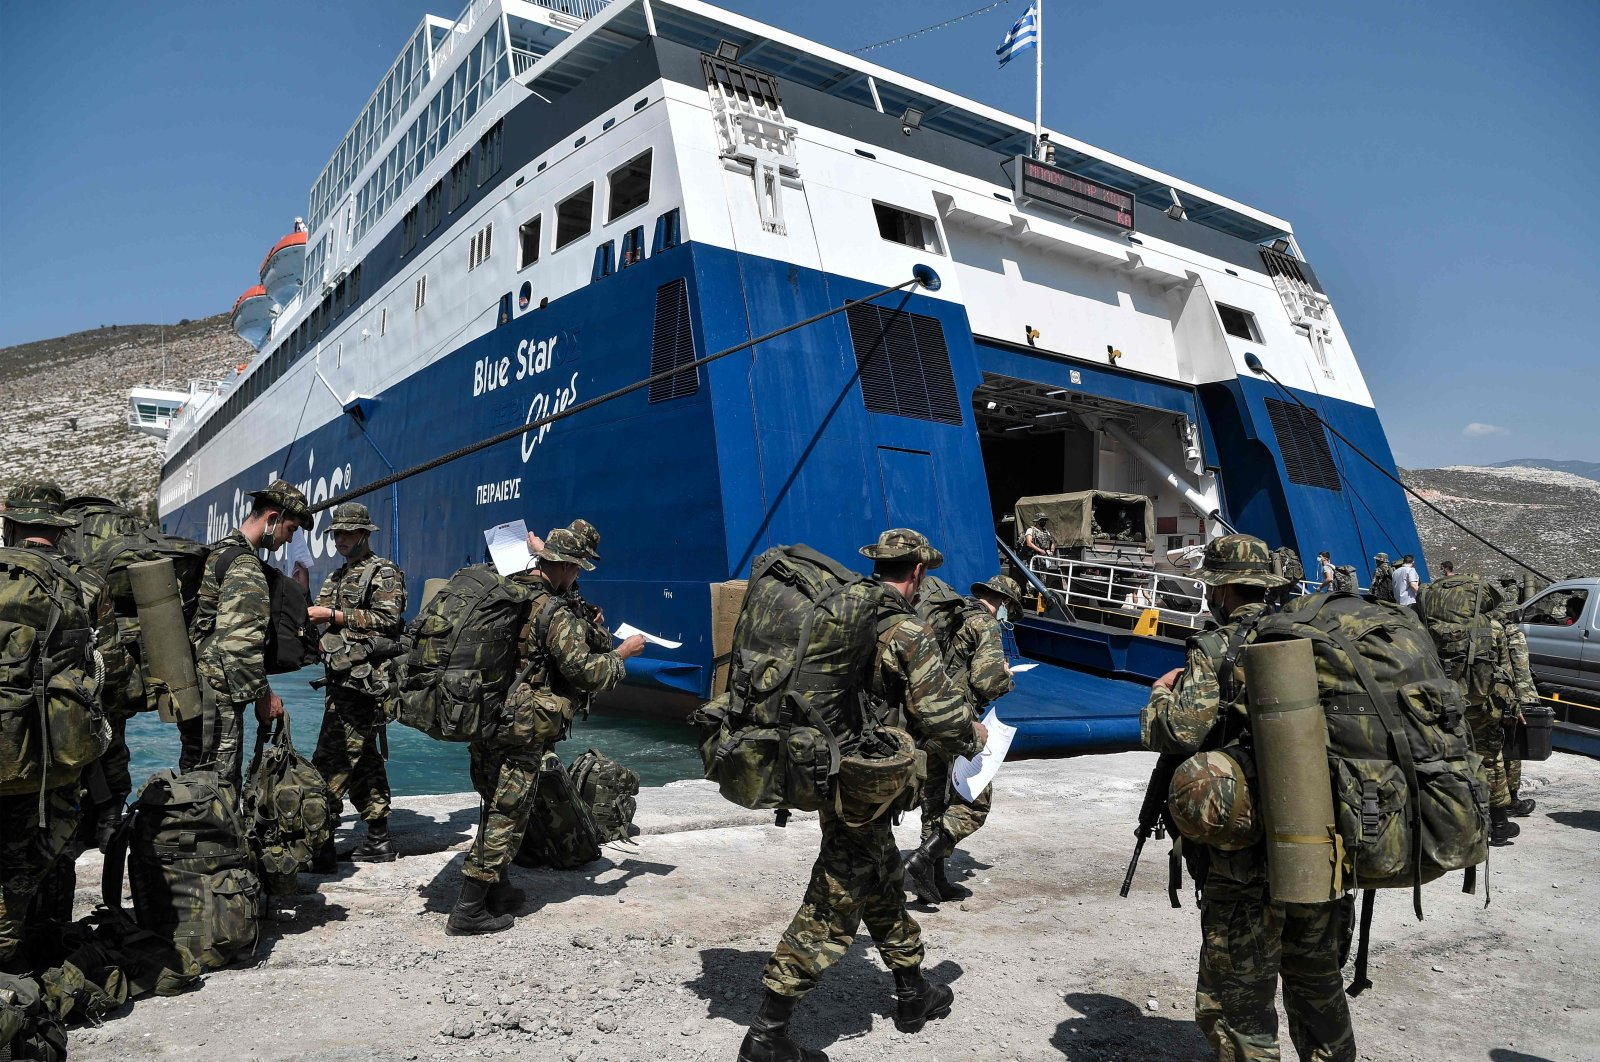 Greek soldiers prepare to board a ferry at the port of the tiny Greek island of Kastellorizo (Megisti-Meis), the most southeastern inhabited Greek island in the Dodecanese, situated two kilometers off the south coast of Turkey. (AFP Photo)